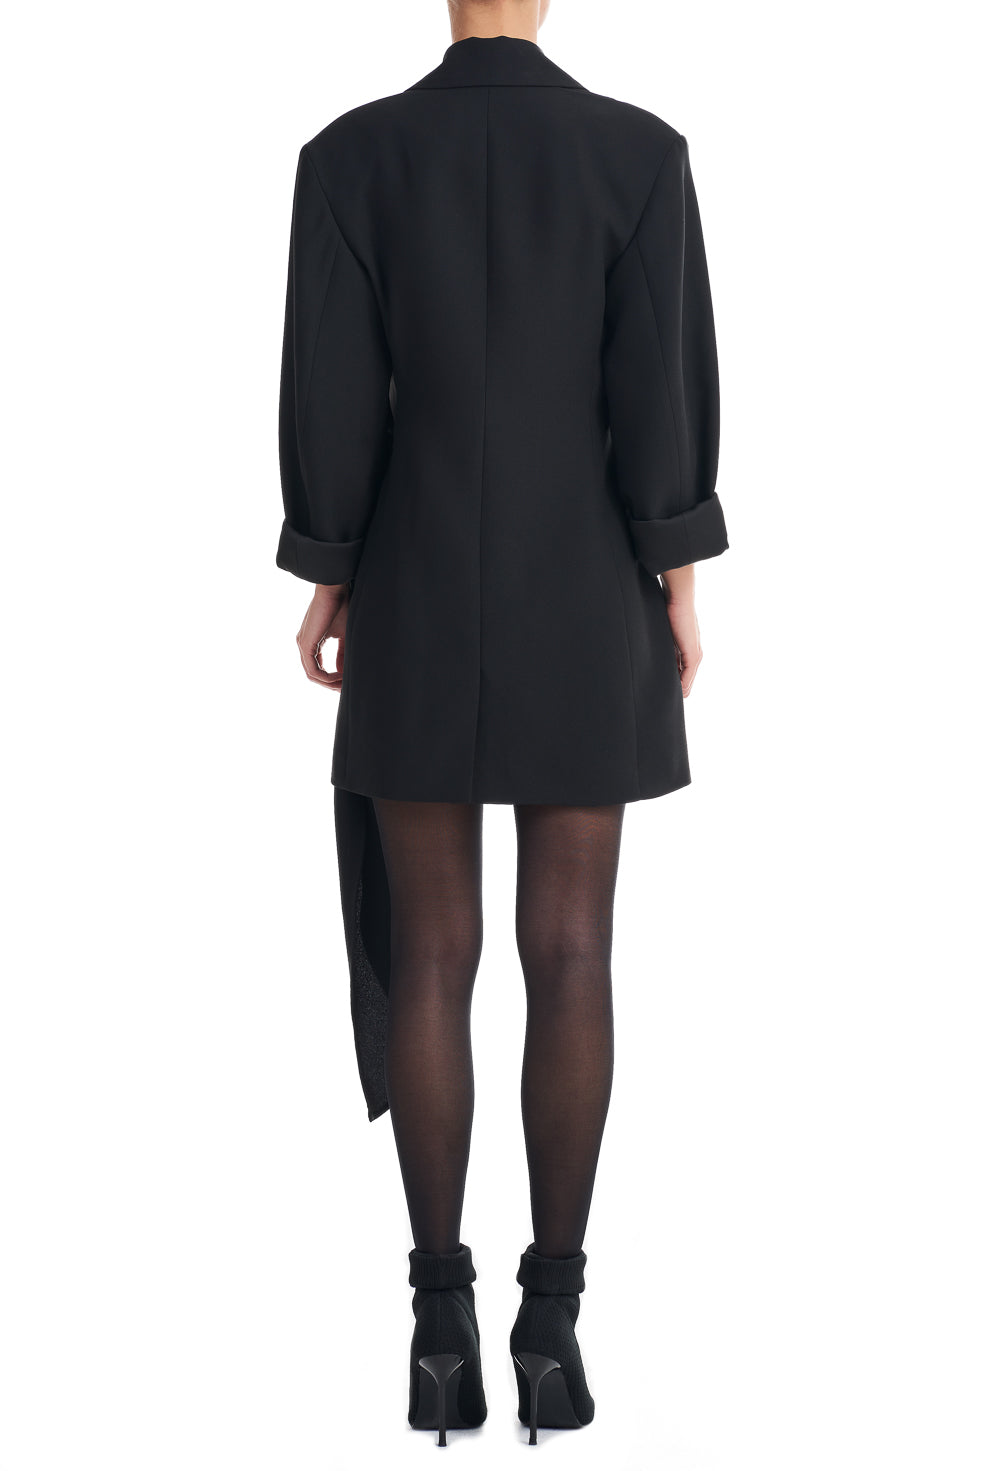 Paloma Black Asymmetric Blazer Mini Dress